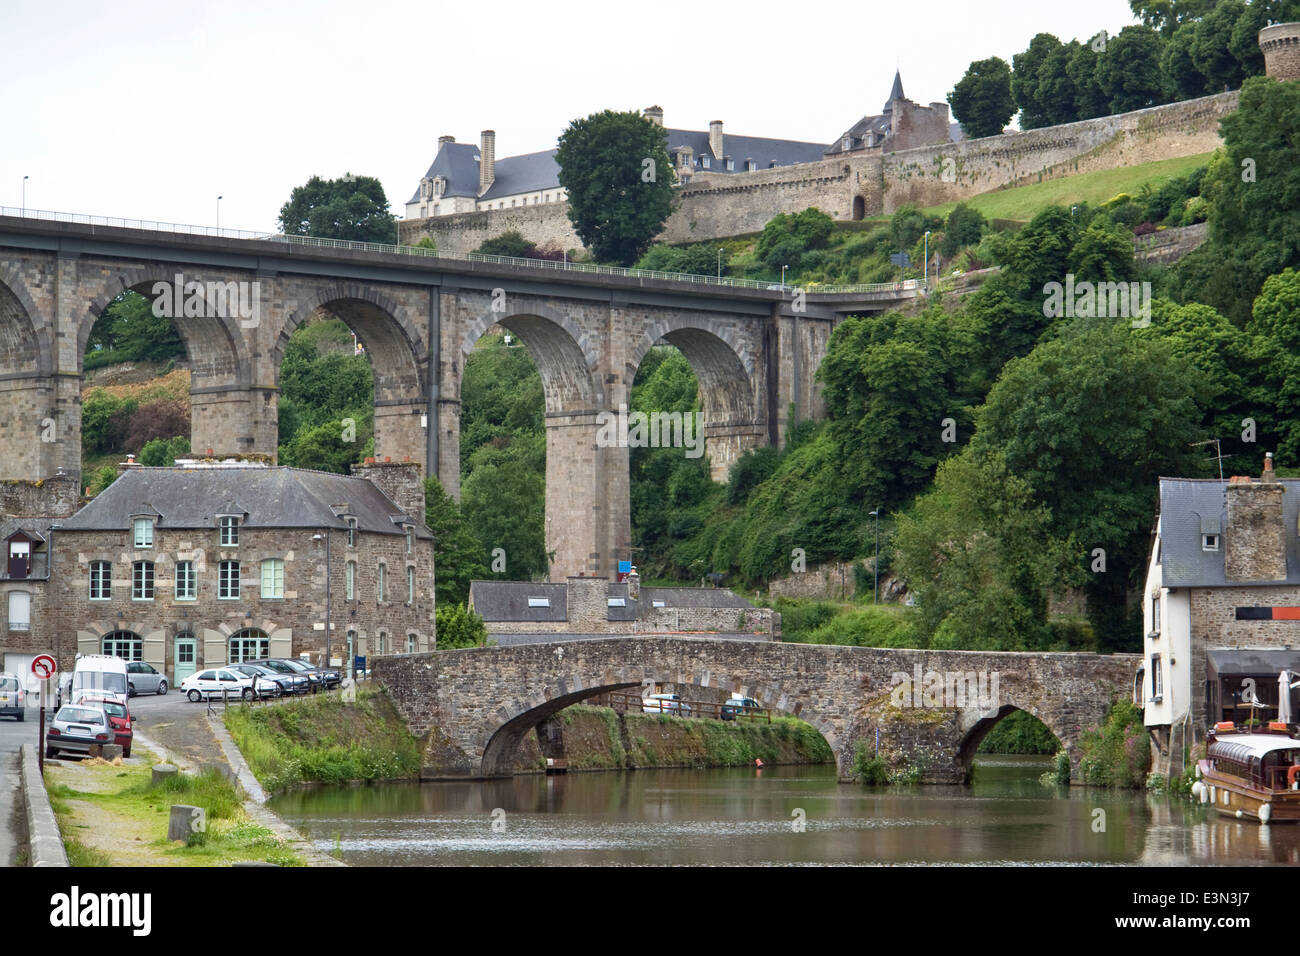 Idyllic scenery at the port of Dinan, a town in Brittany, France. It is located at the river Rance Stock Photo